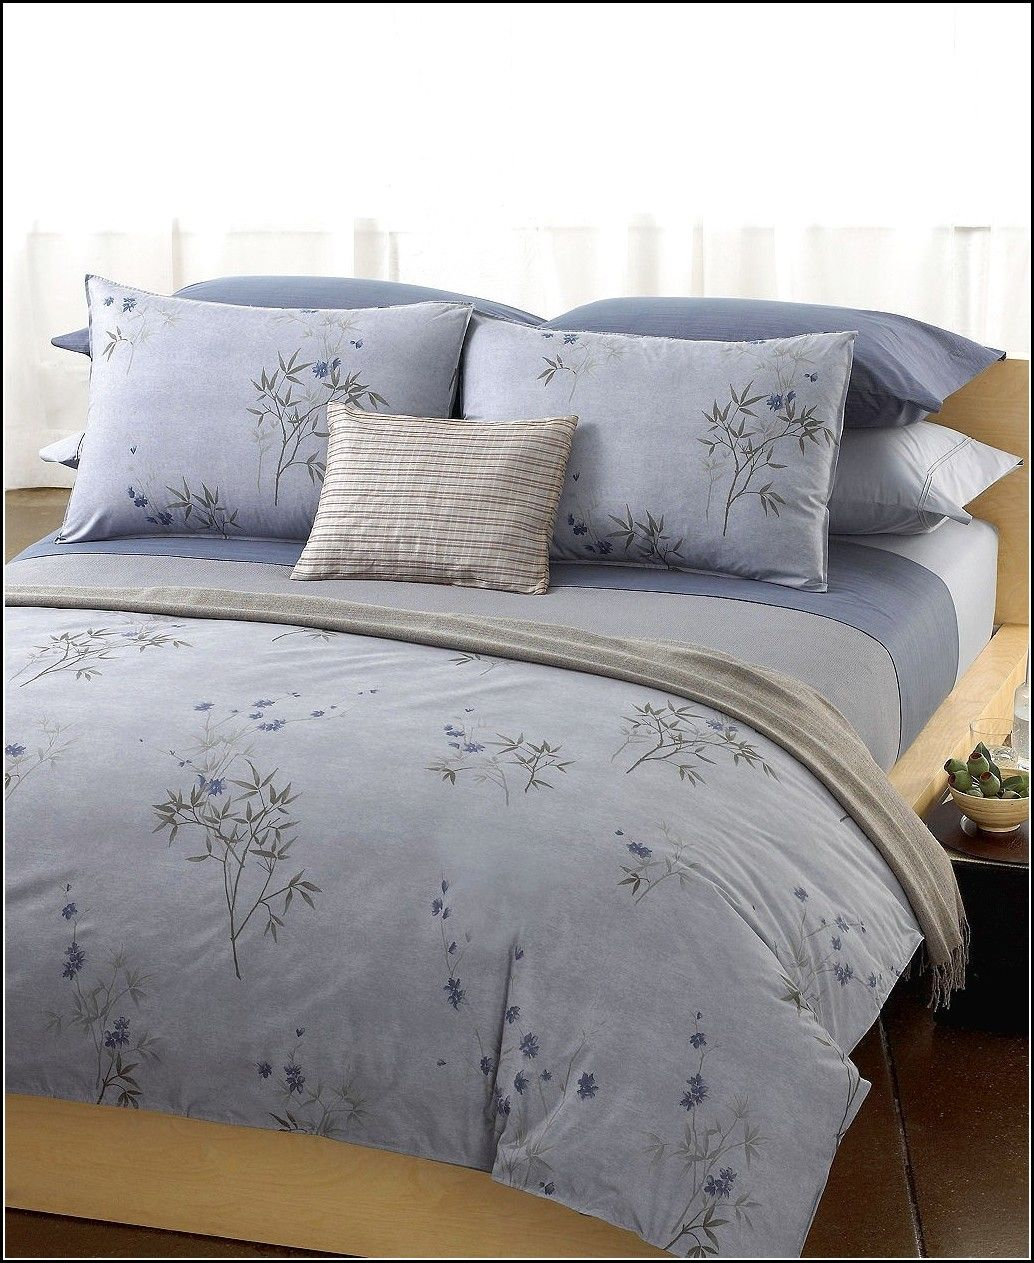 Bedroom Bedding Closeout Calvin Klein Marin Comforter And Duvet Cover Sets And Calvin Klein Bamboo Flowers Throw Pil Calvin Klein Bedding Home King Bed Sheets